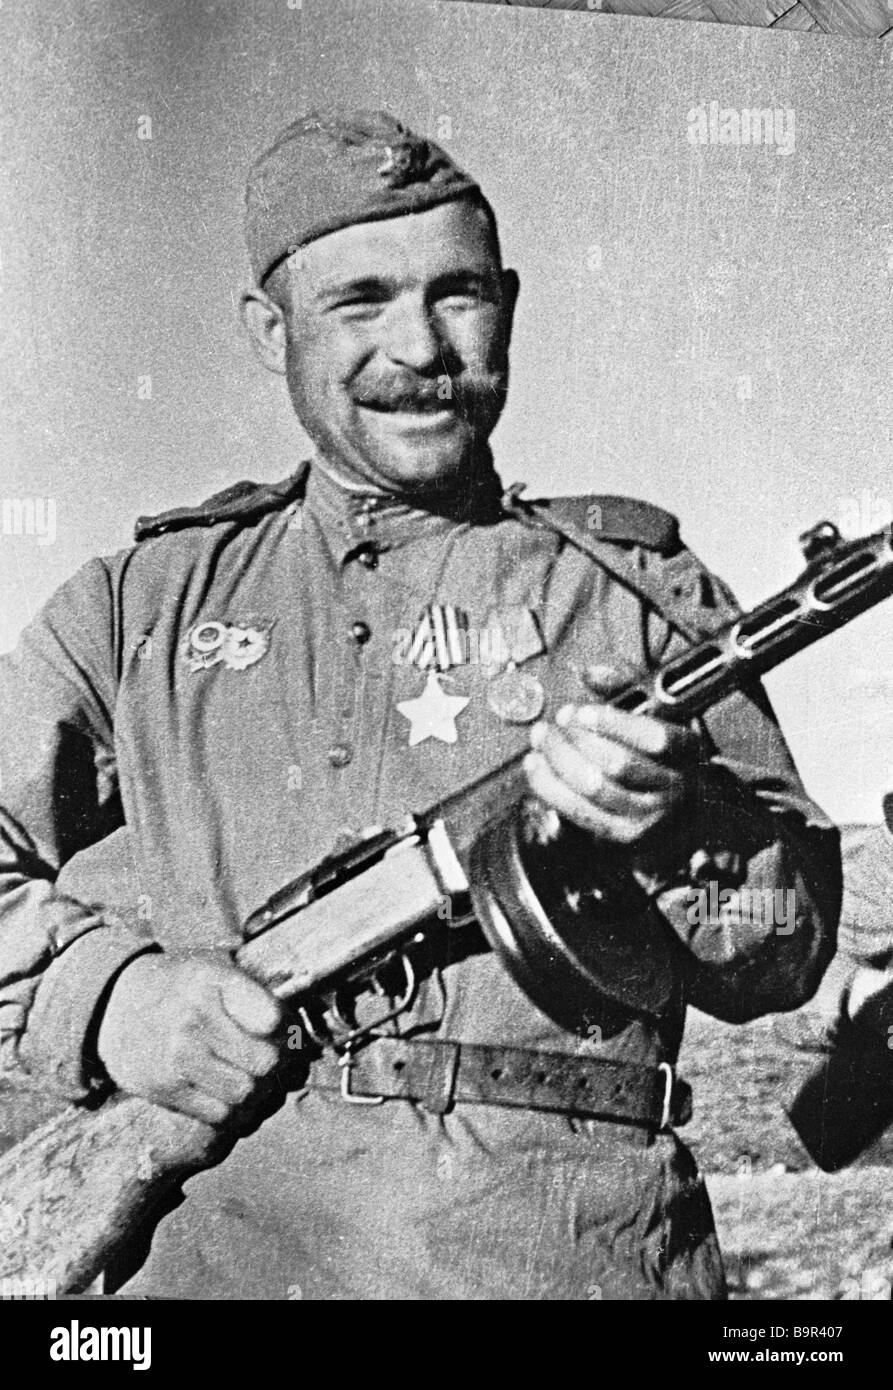 Soldier Ivan Sokolov with a Shpagin submachine gun The 1st Far Eastern Front - Stock Image